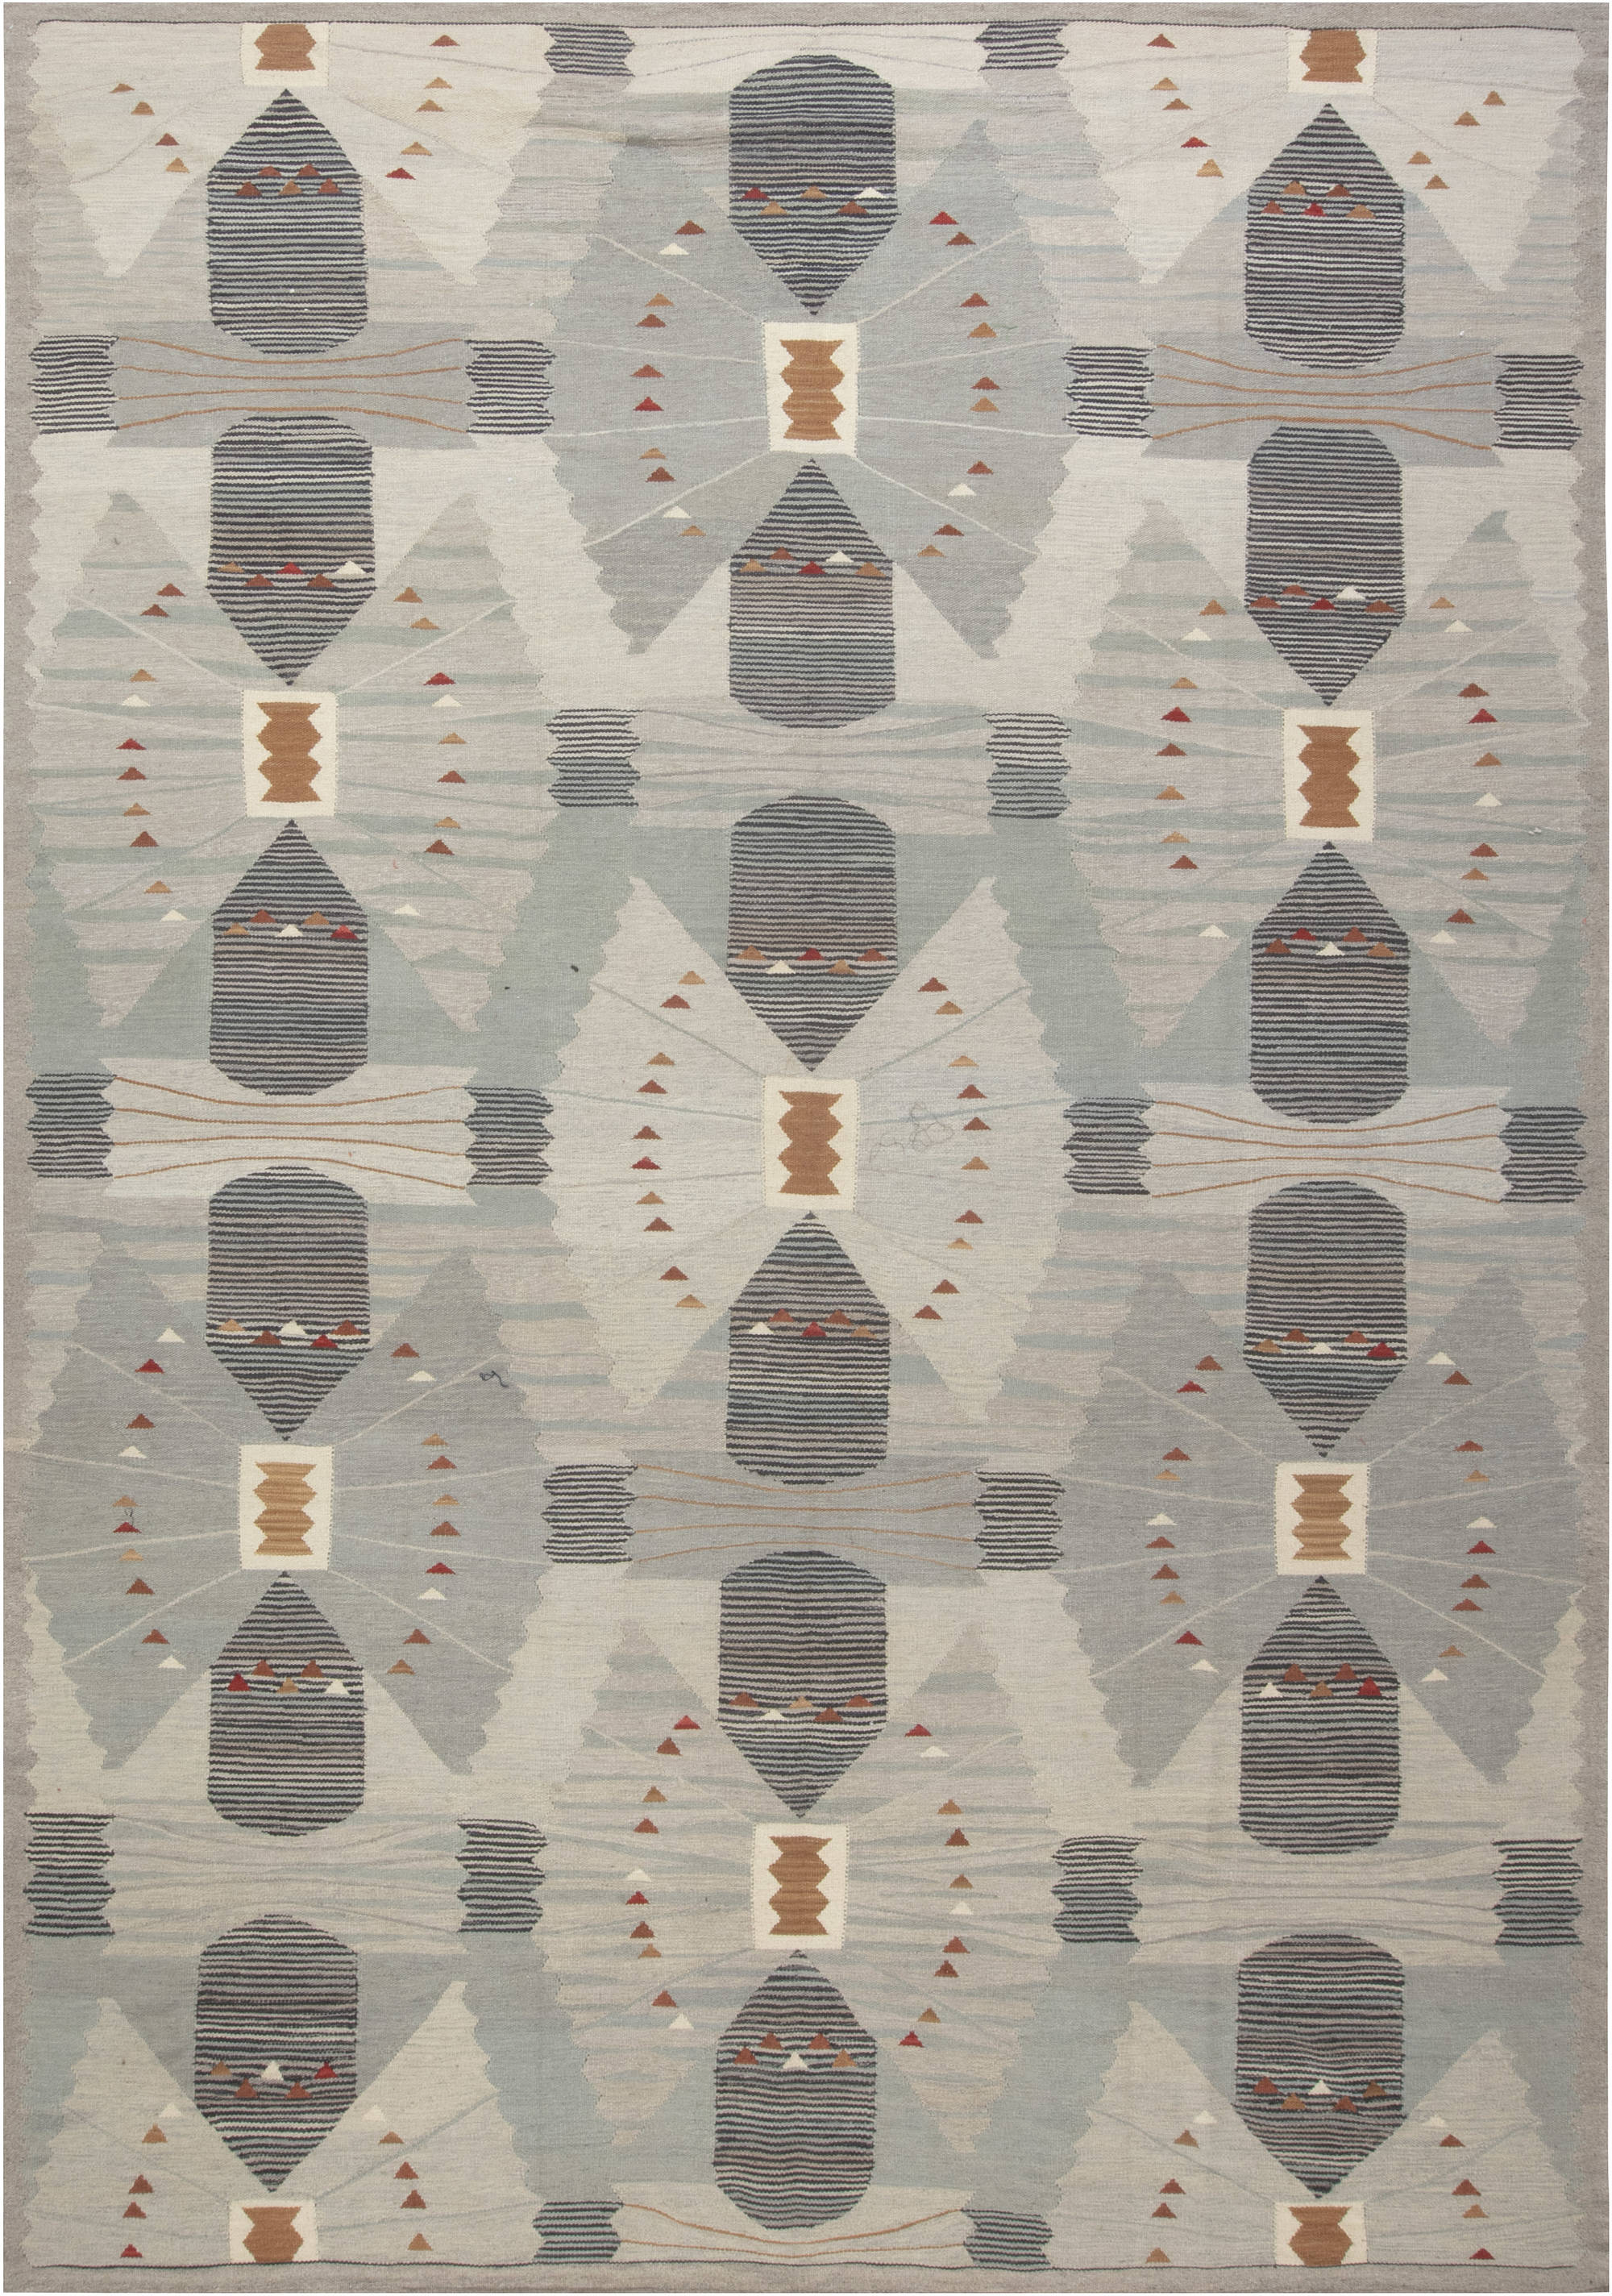 Swedish Design Rug N11973 By Doris Leslie Blau